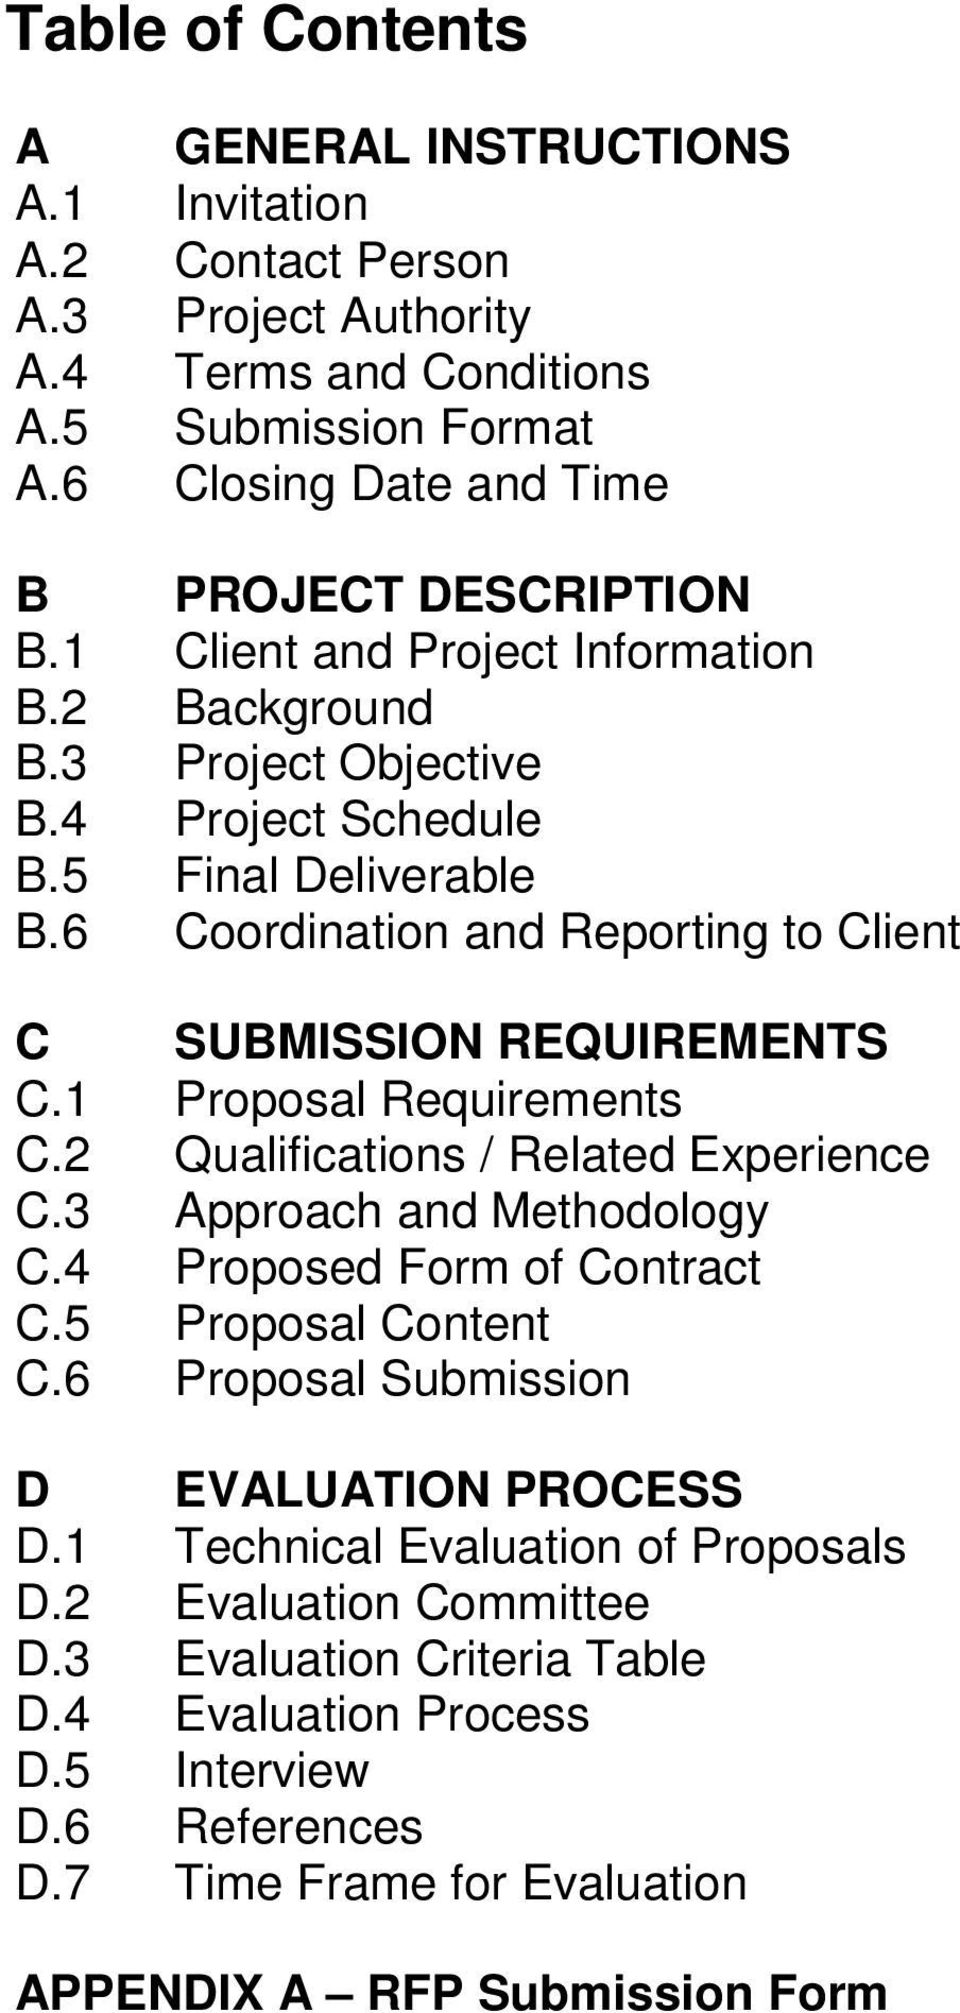 6 Coordination and Reporting to Client C SUBMISSION REQUIREMENTS C.1 Proposal Requirements C.2 Qualifications / Related Experience C.3 Approach and Methodology C.4 Proposed Form of Contract C.